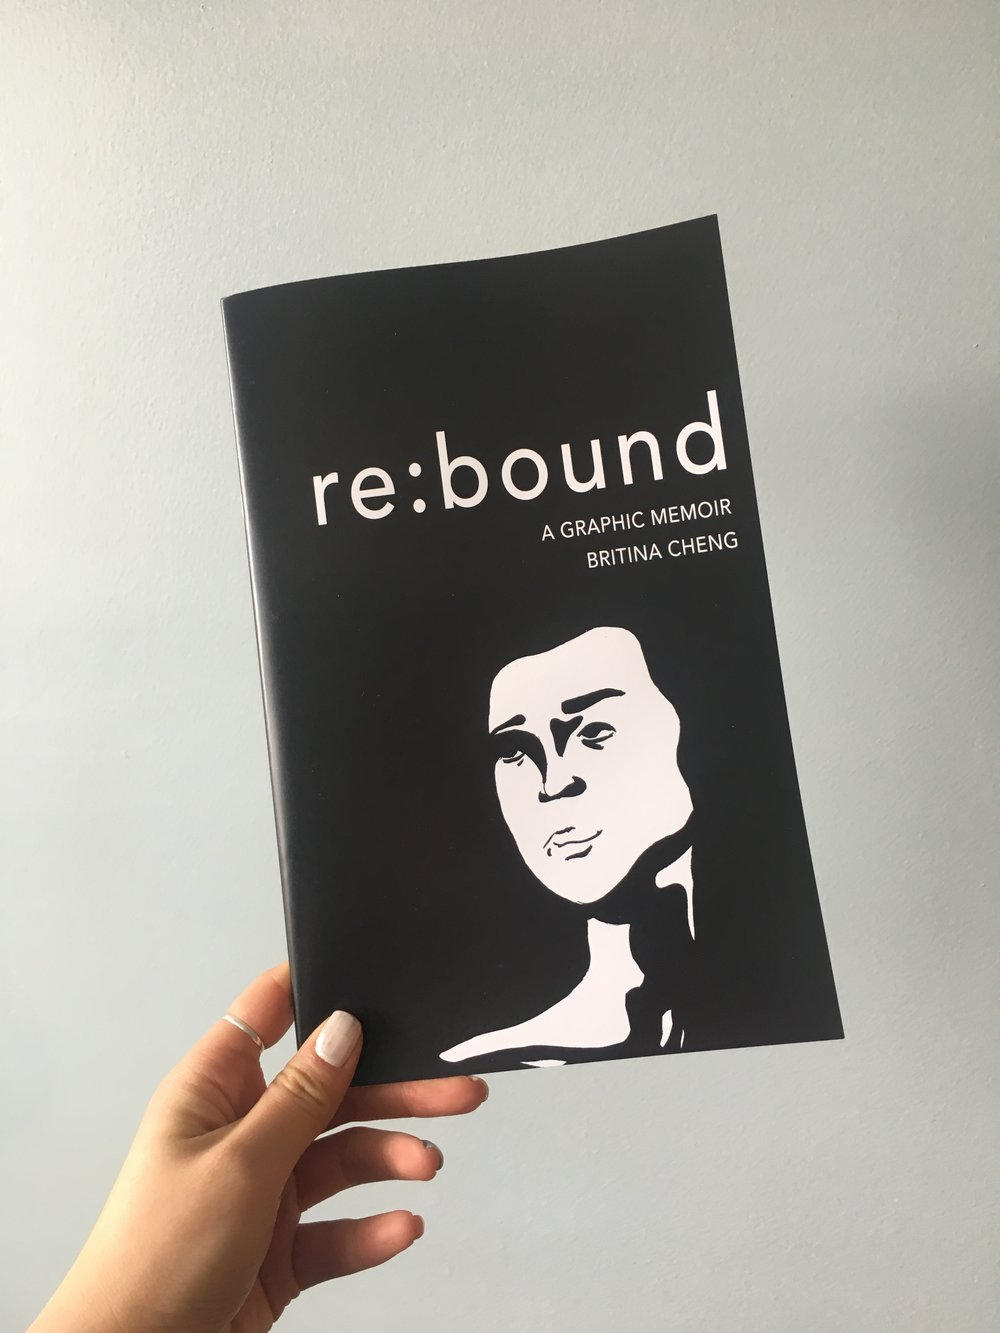 cover: re:bound a graphic memoir by britina cheng